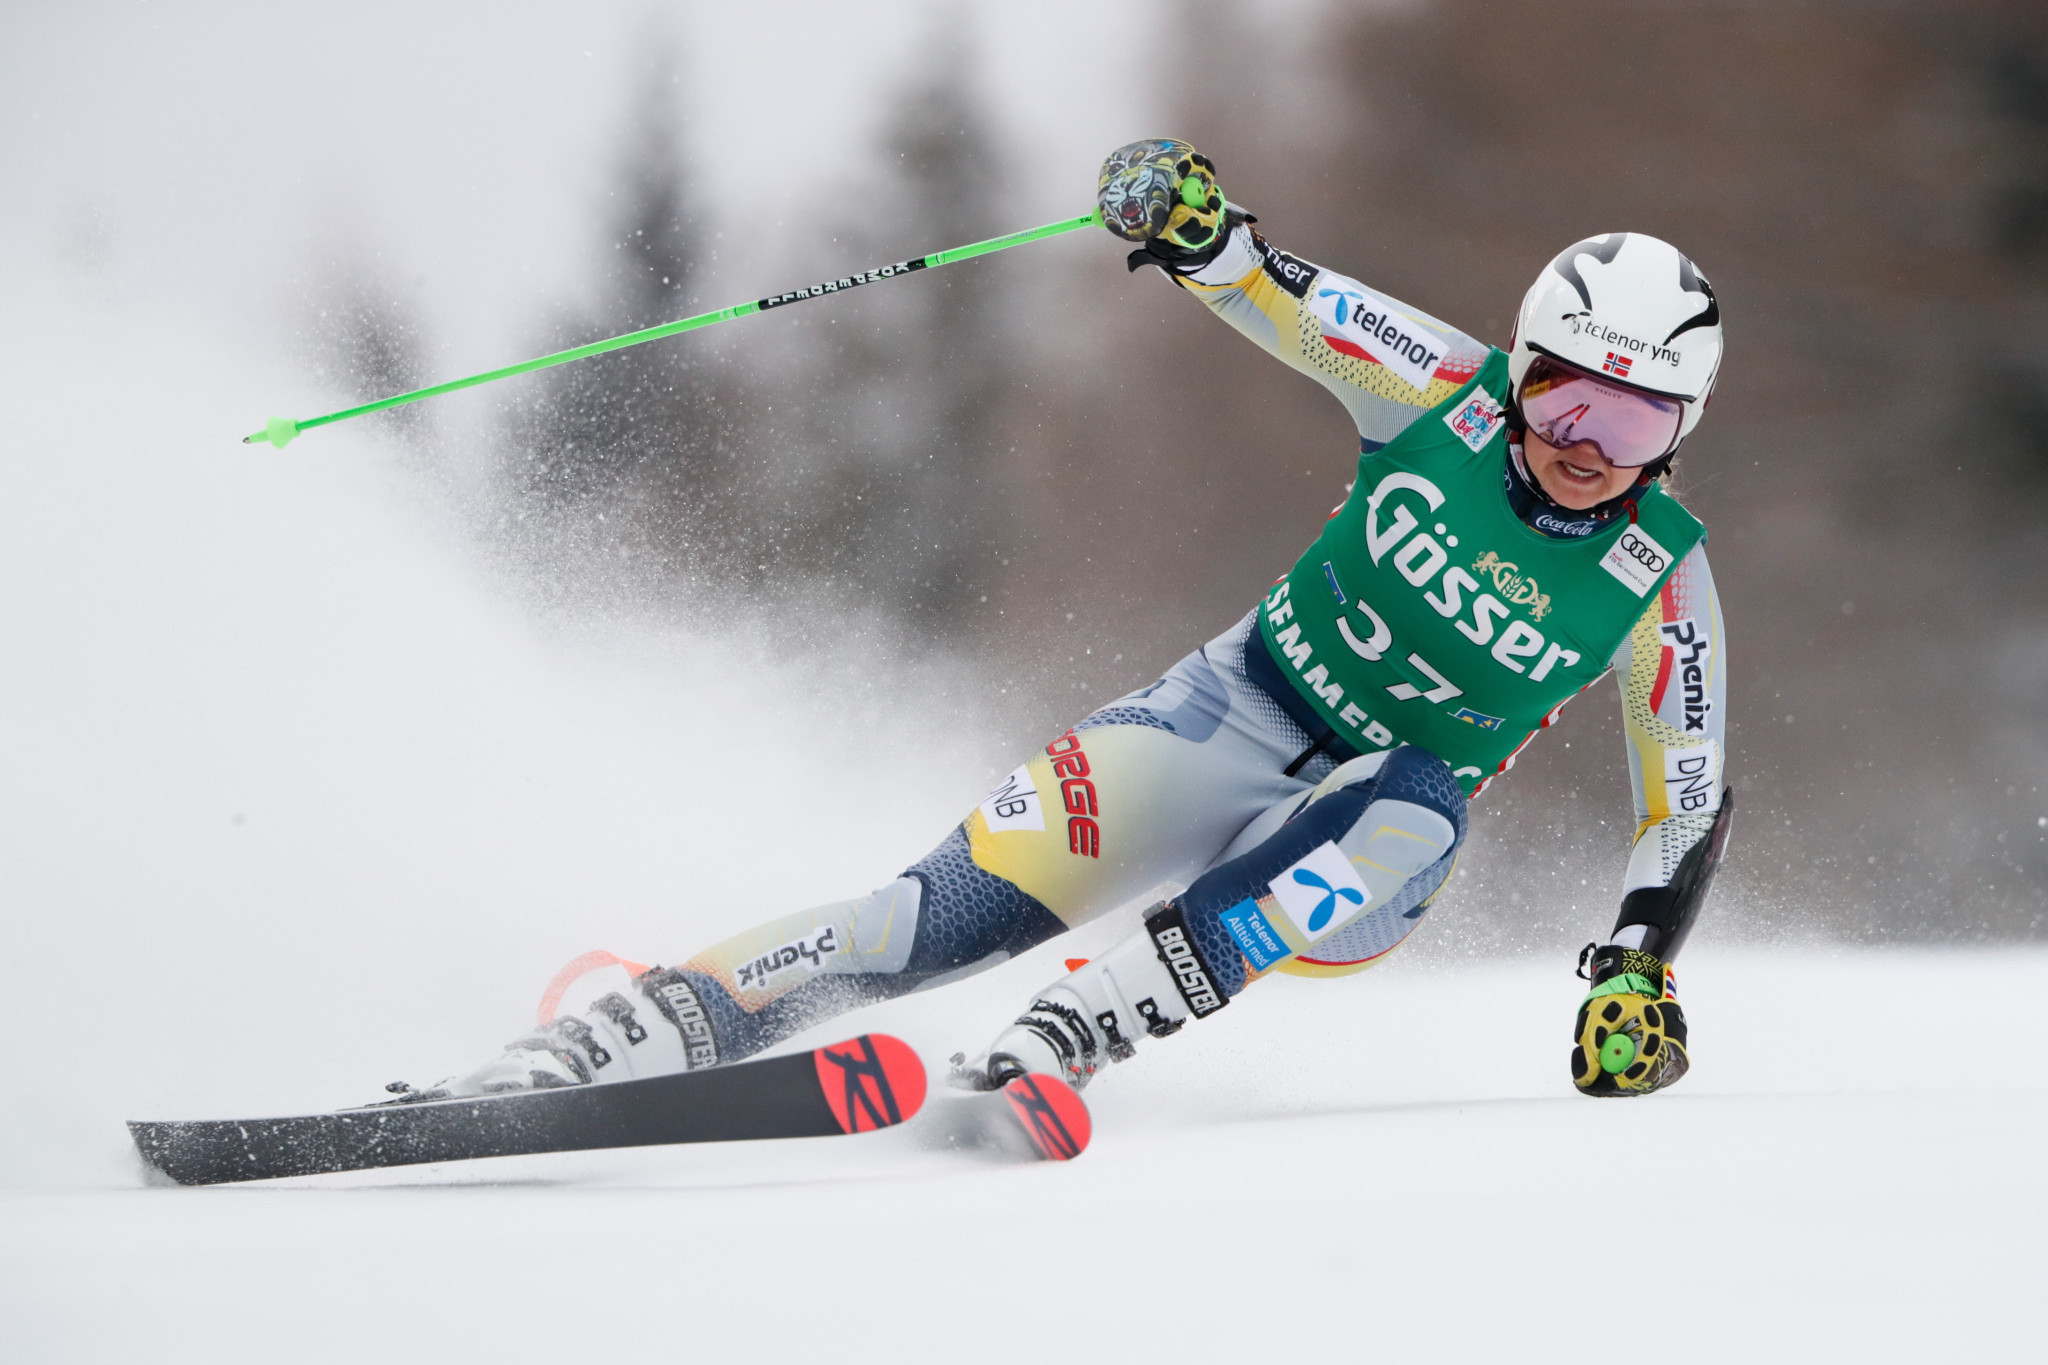 Marte Monsen came second in the women's giant slalom ©Getty Images